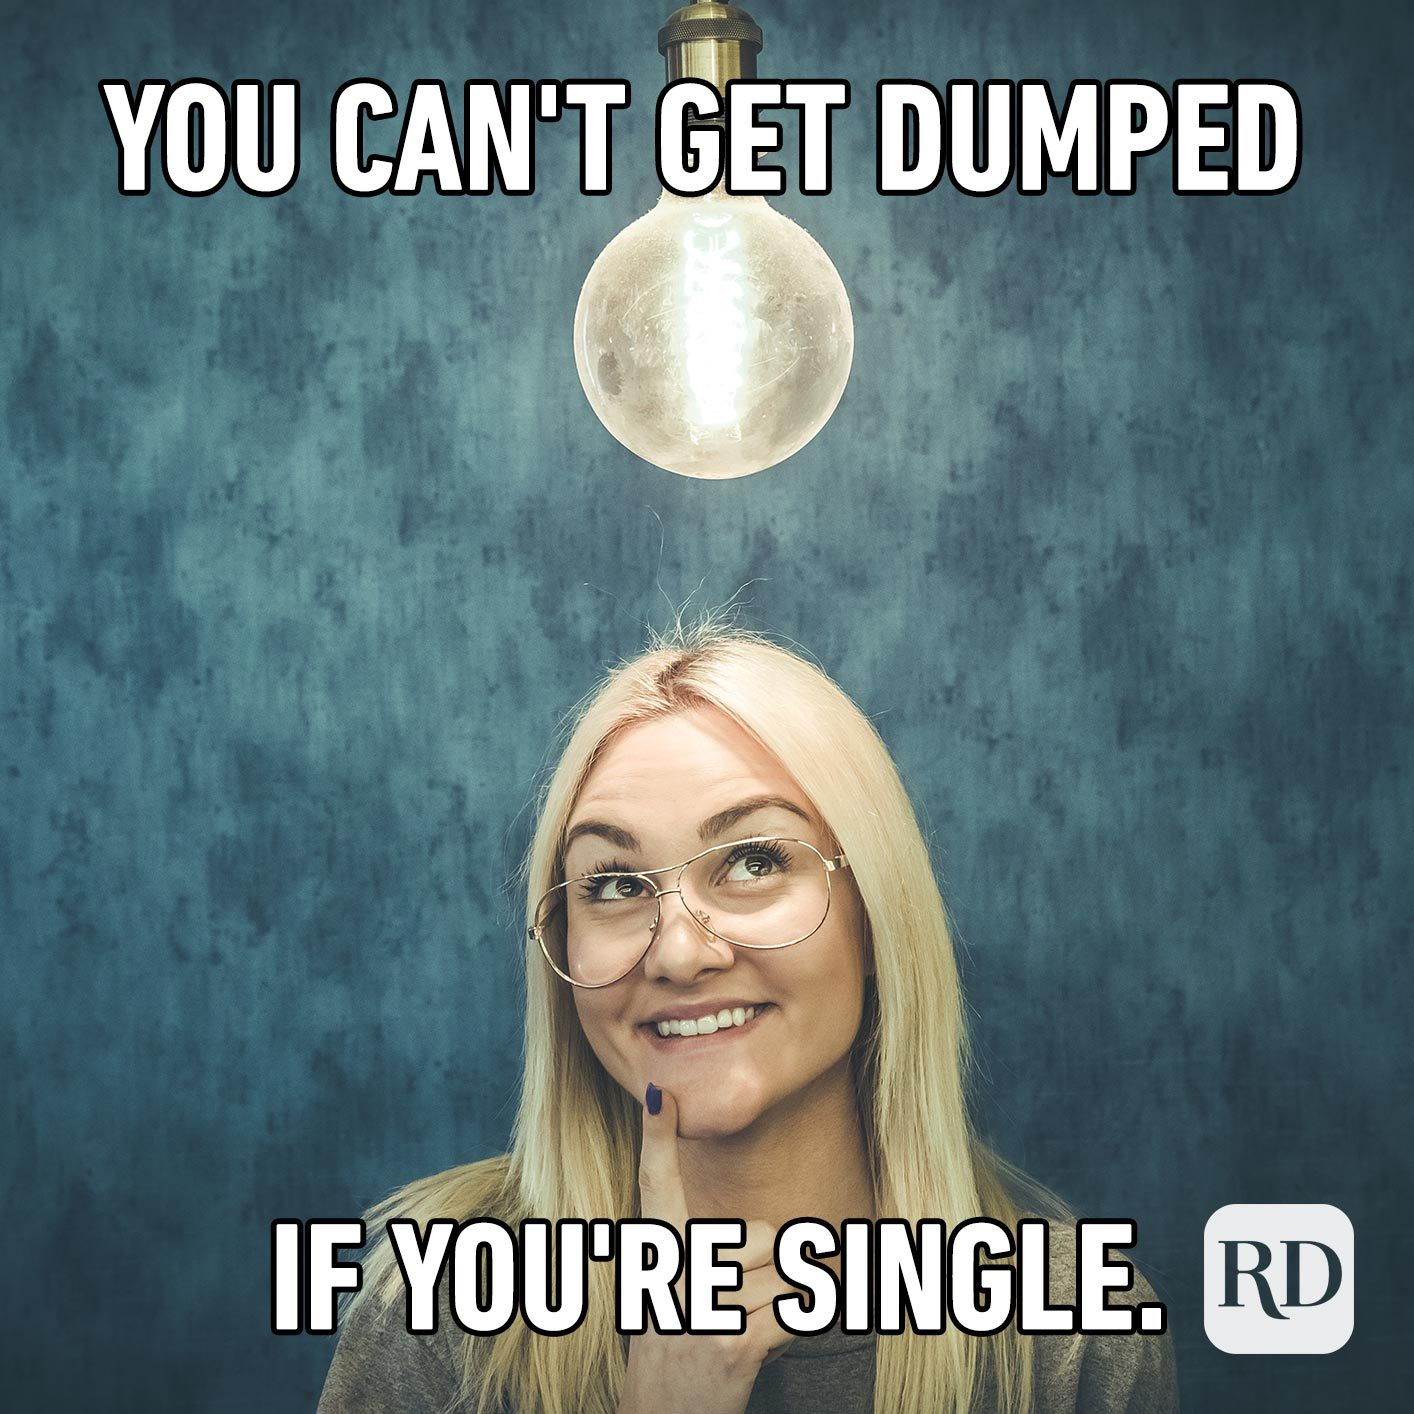 Woman underneath a lightbulb. Meme text: You can't get dumped if you're single.